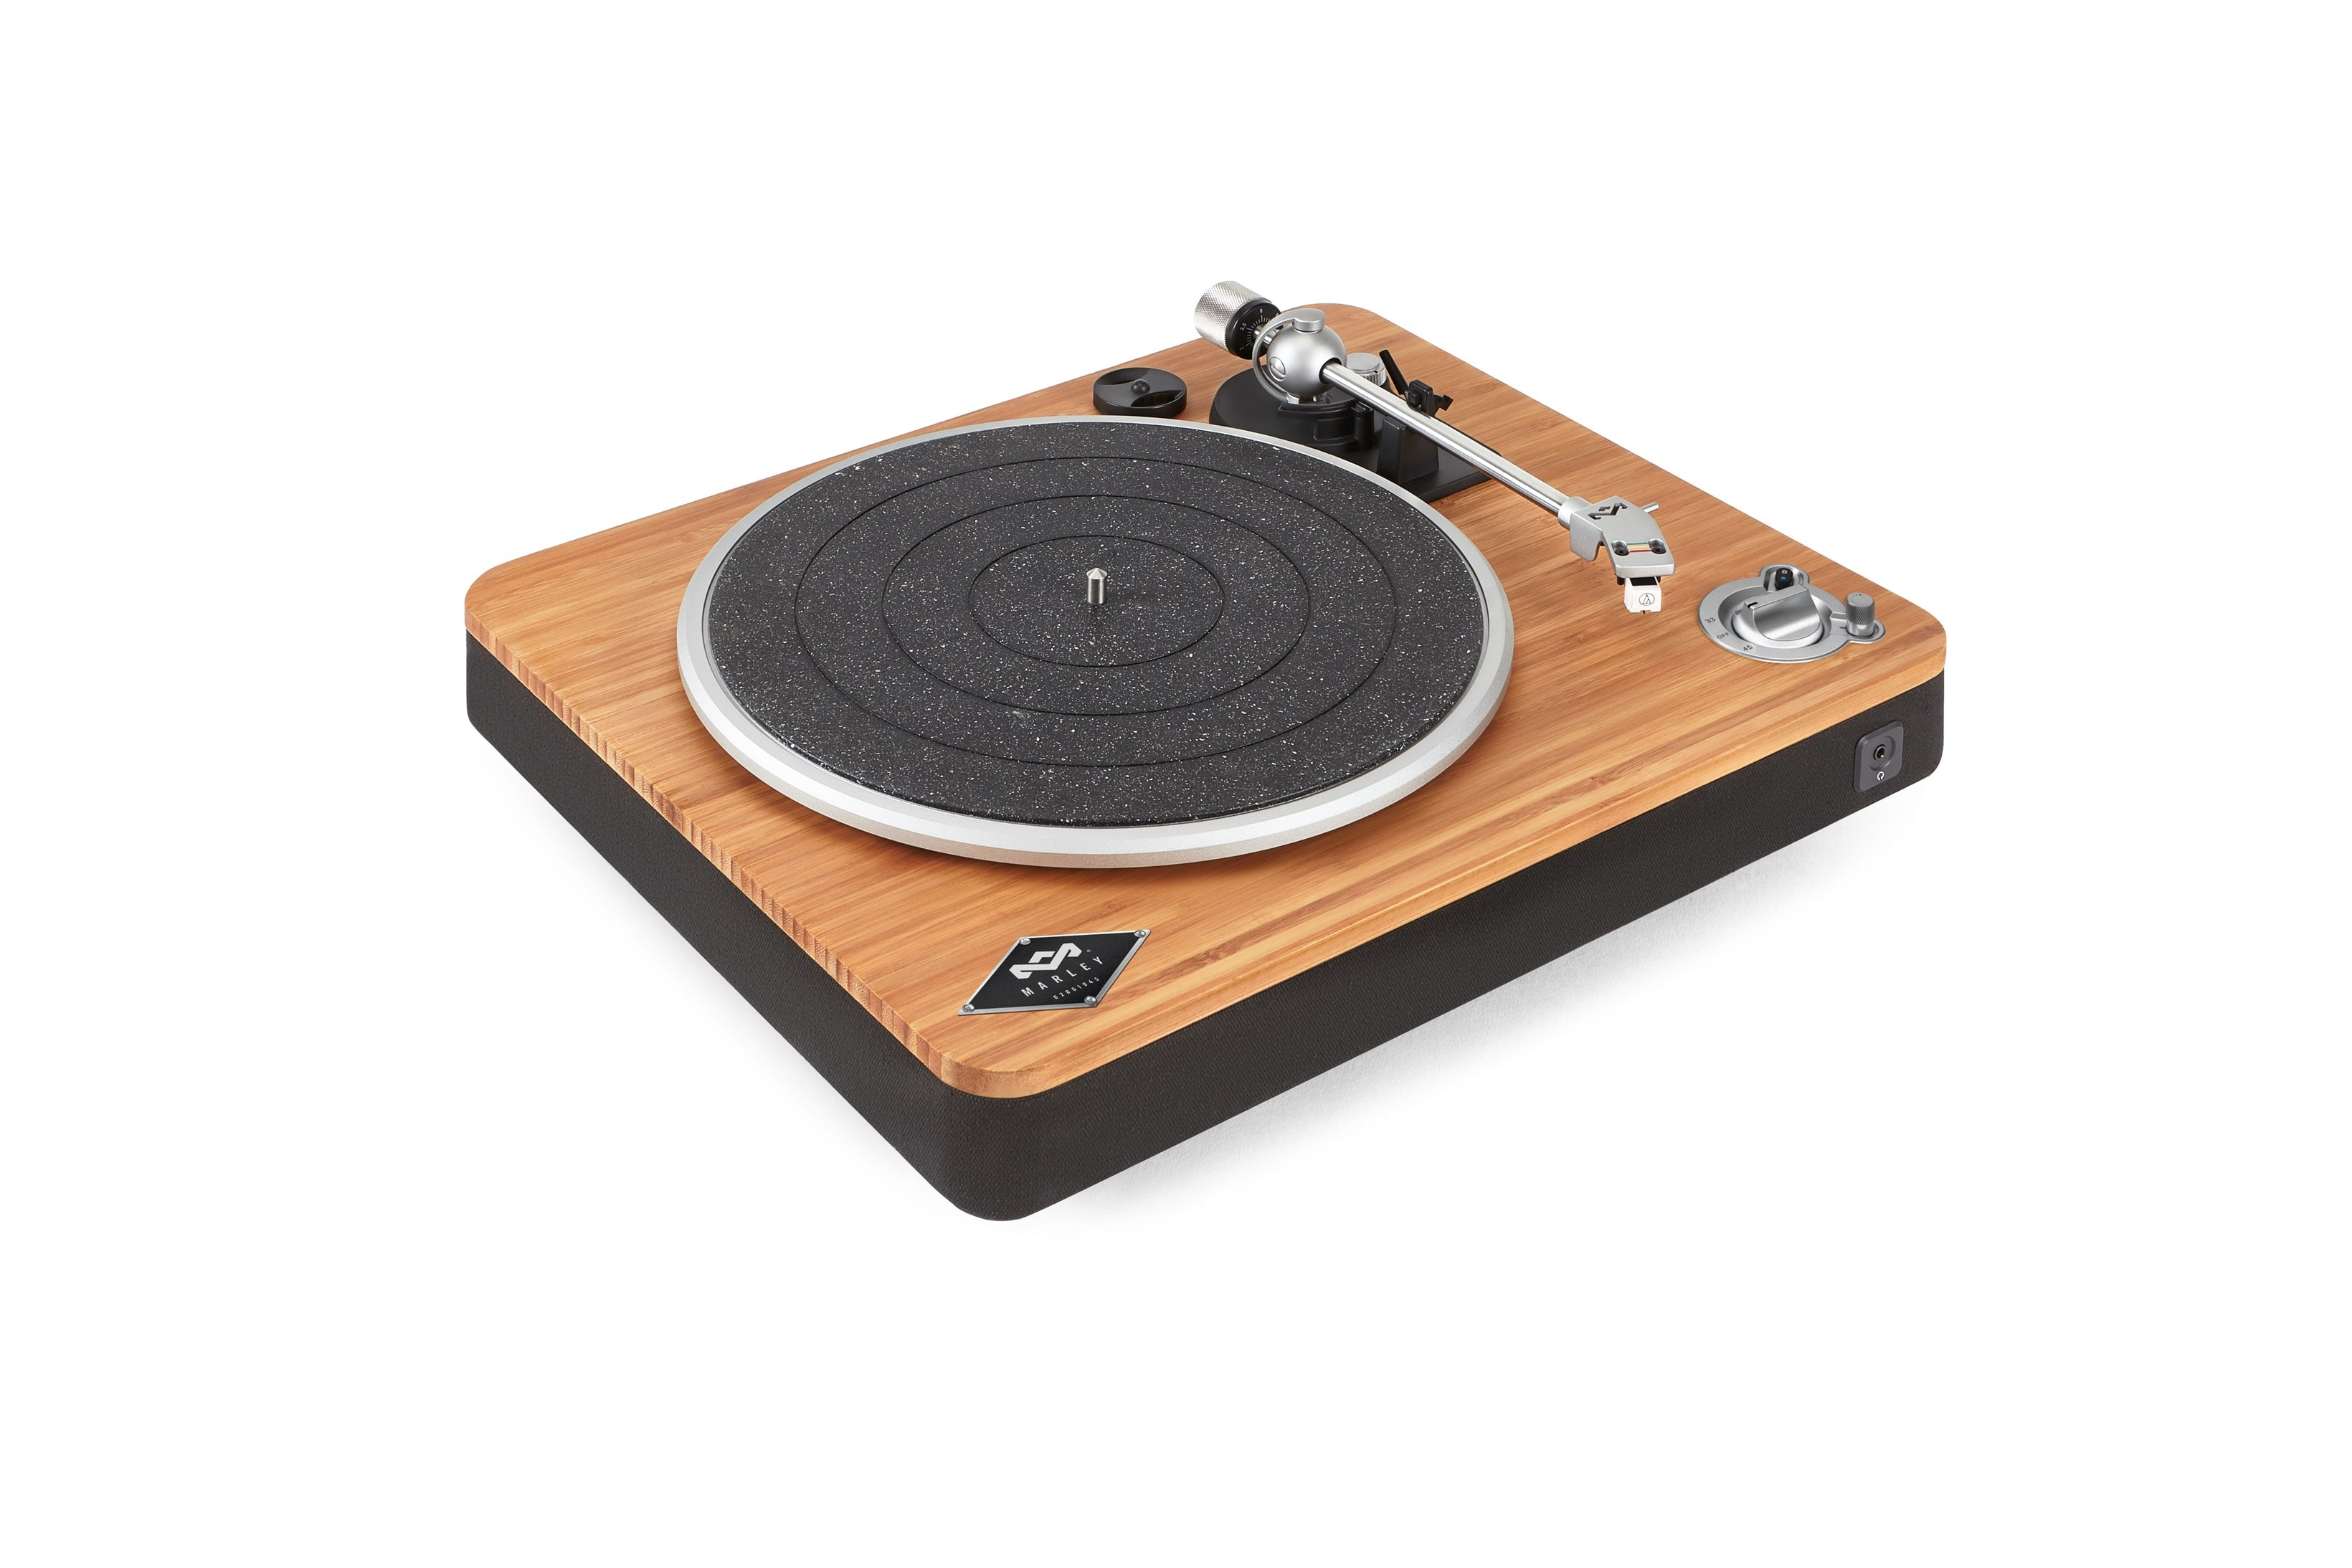 House Of Marley Stir It Up Wireless Bluetooth Turntable - 2